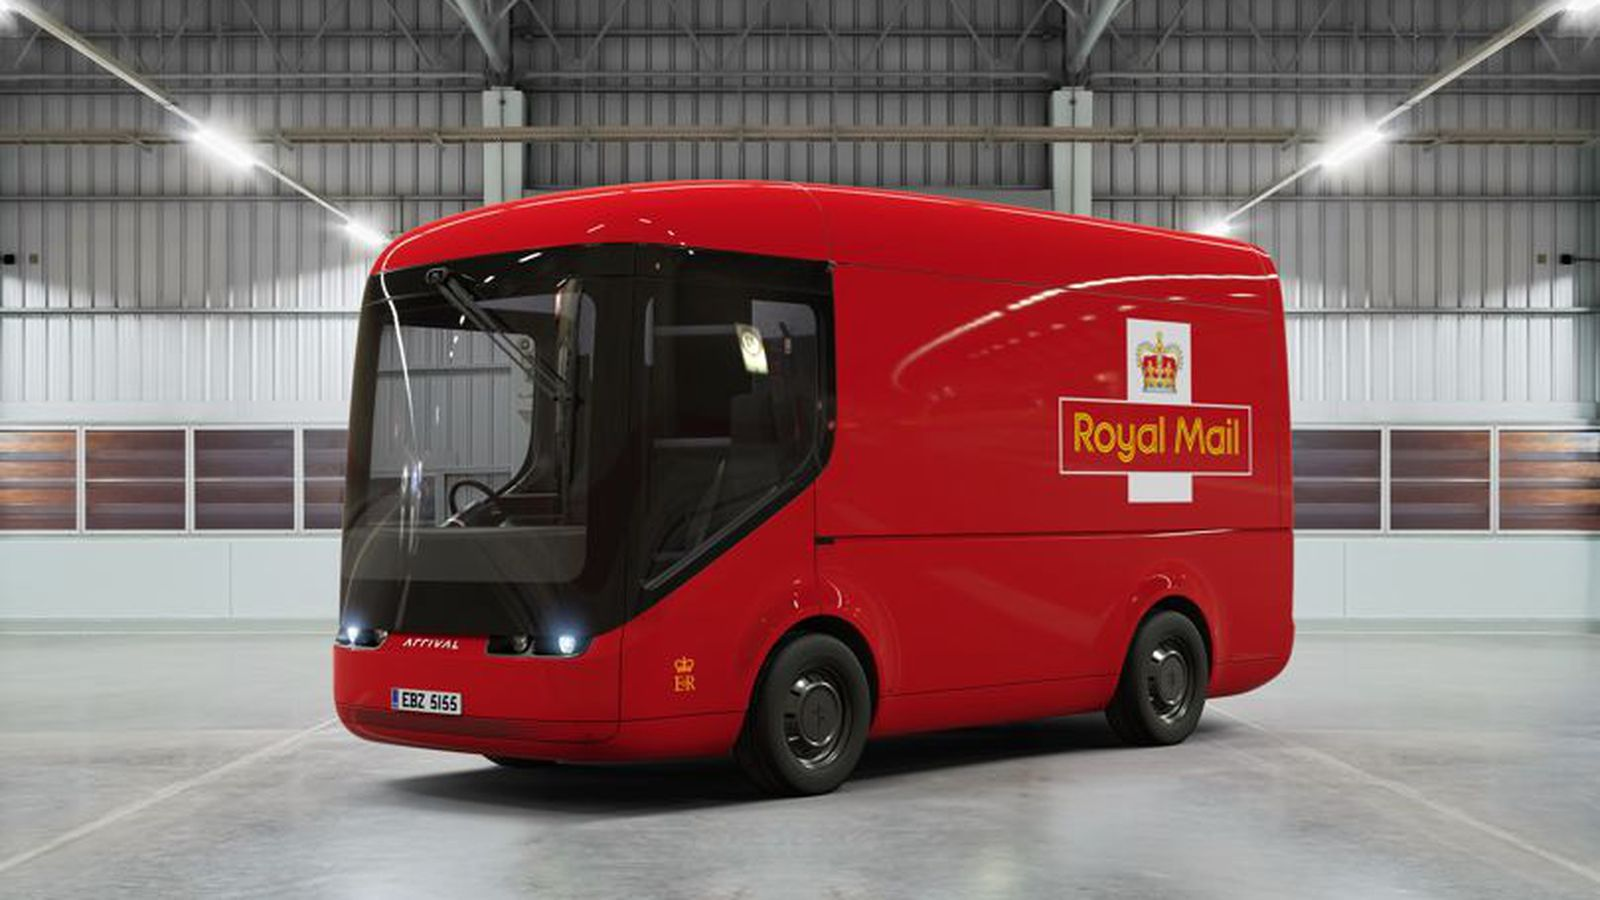 UK?s Royal Mail postal service is now trialling electric vans around London